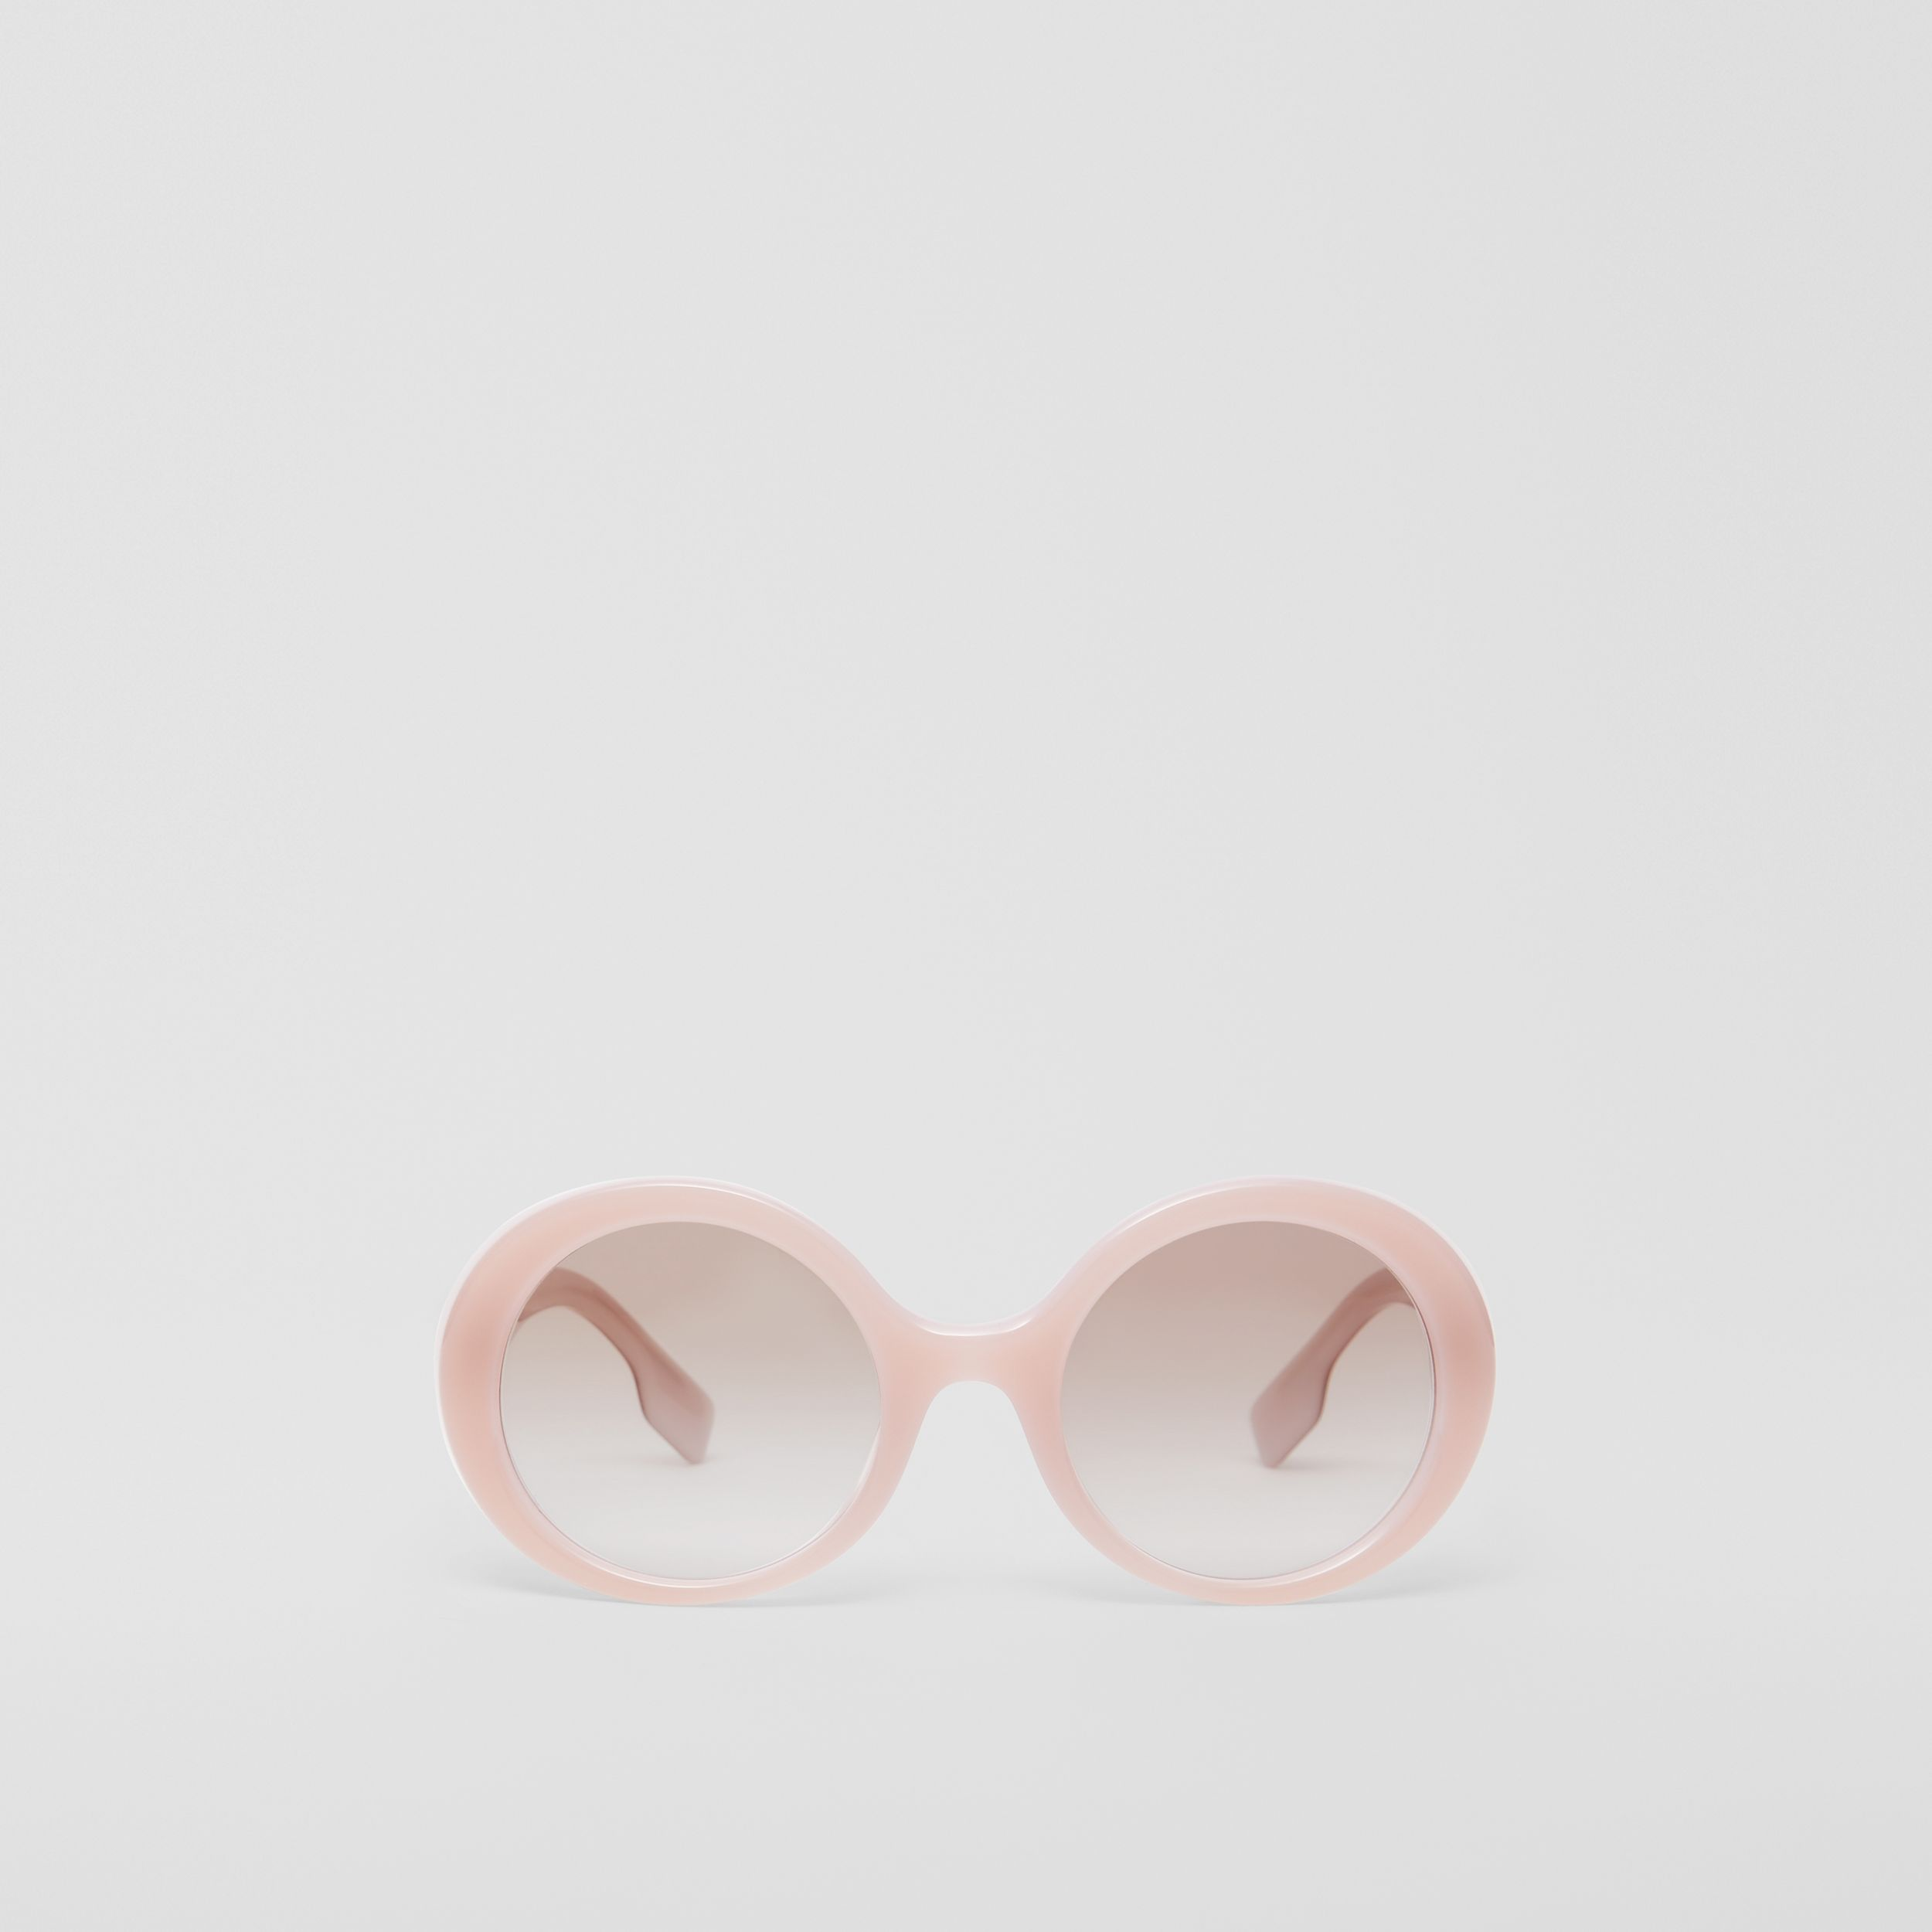 Oversized Round Frame Sunglasses in Opal Pink - Women | Burberry - 1